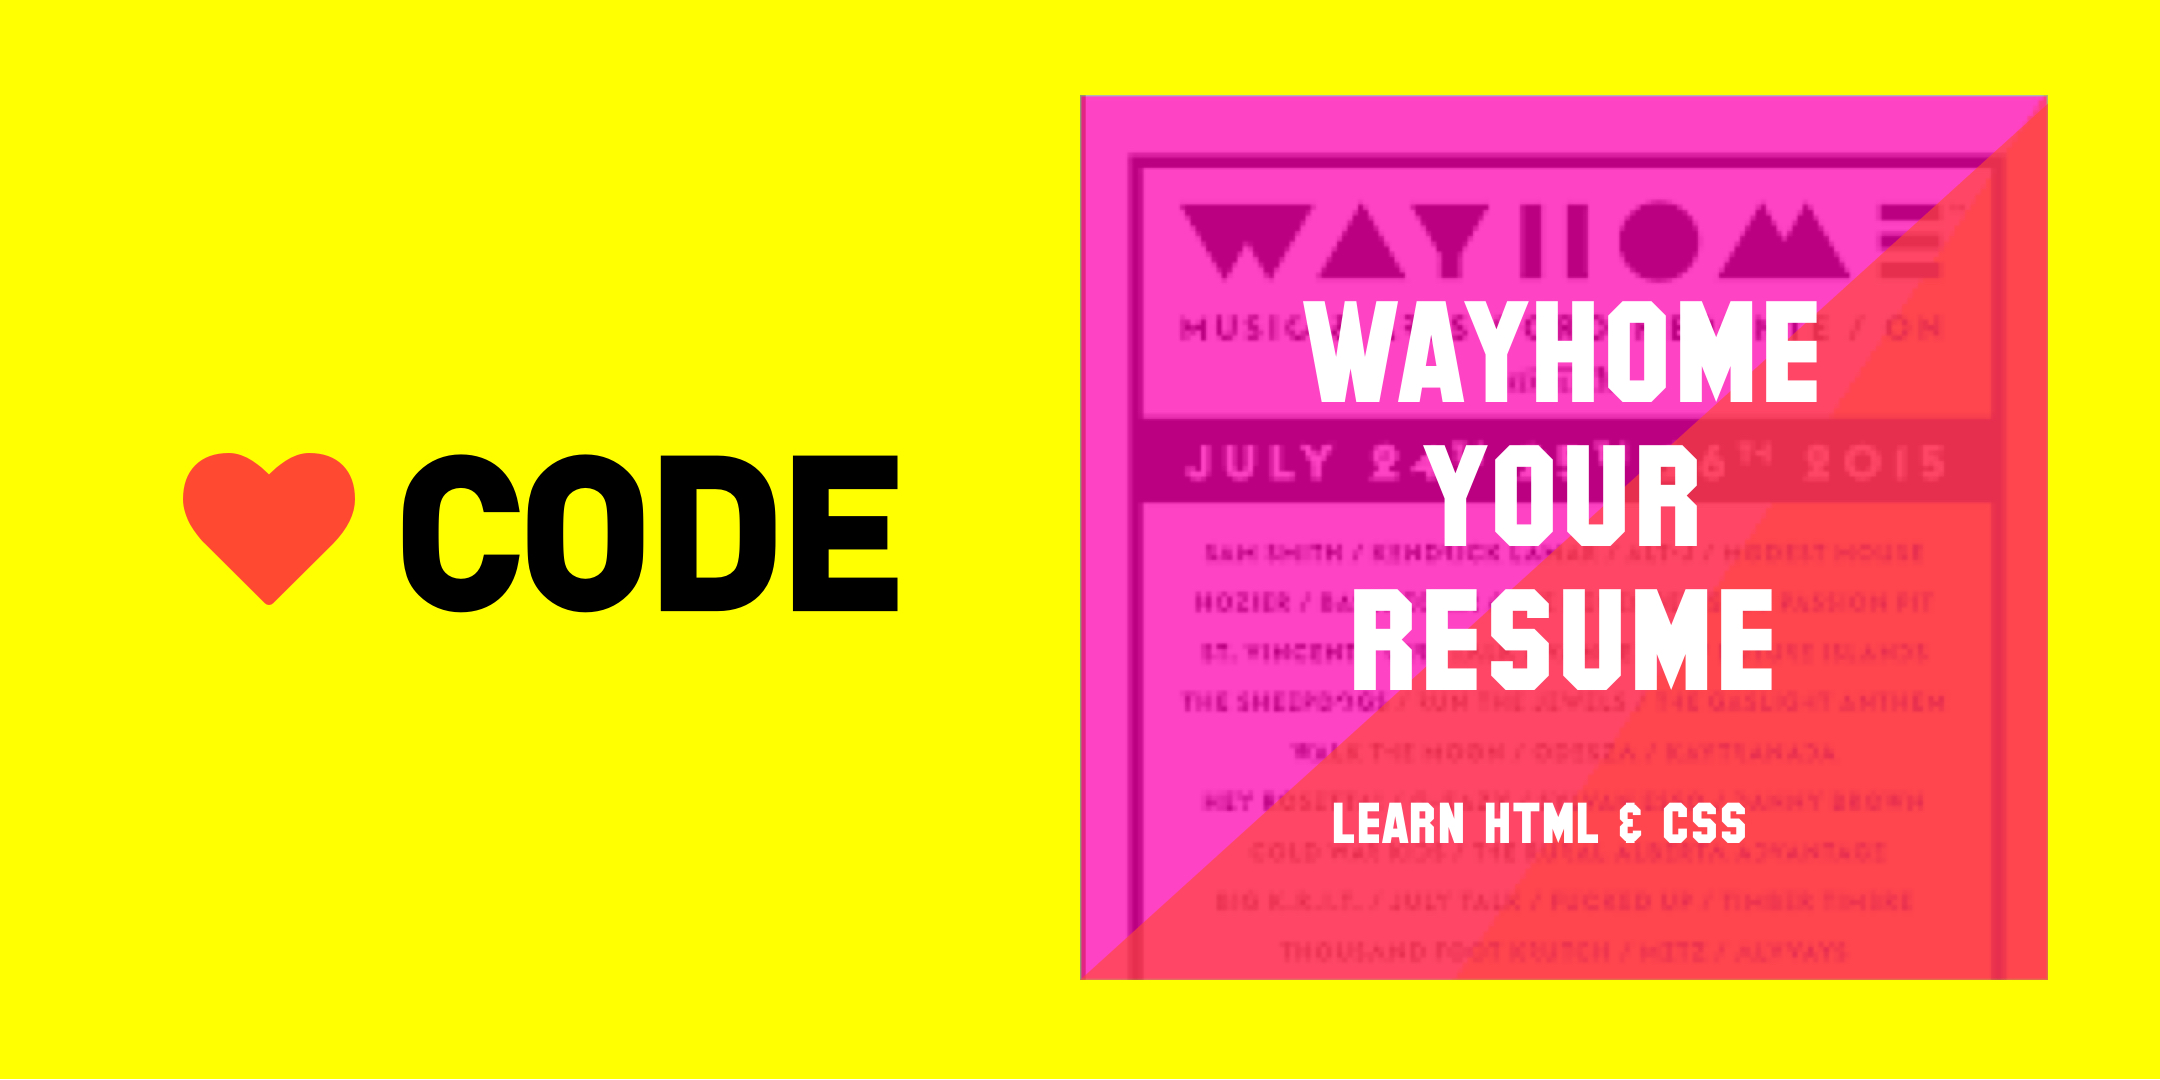 Love Code Wayhome resume course